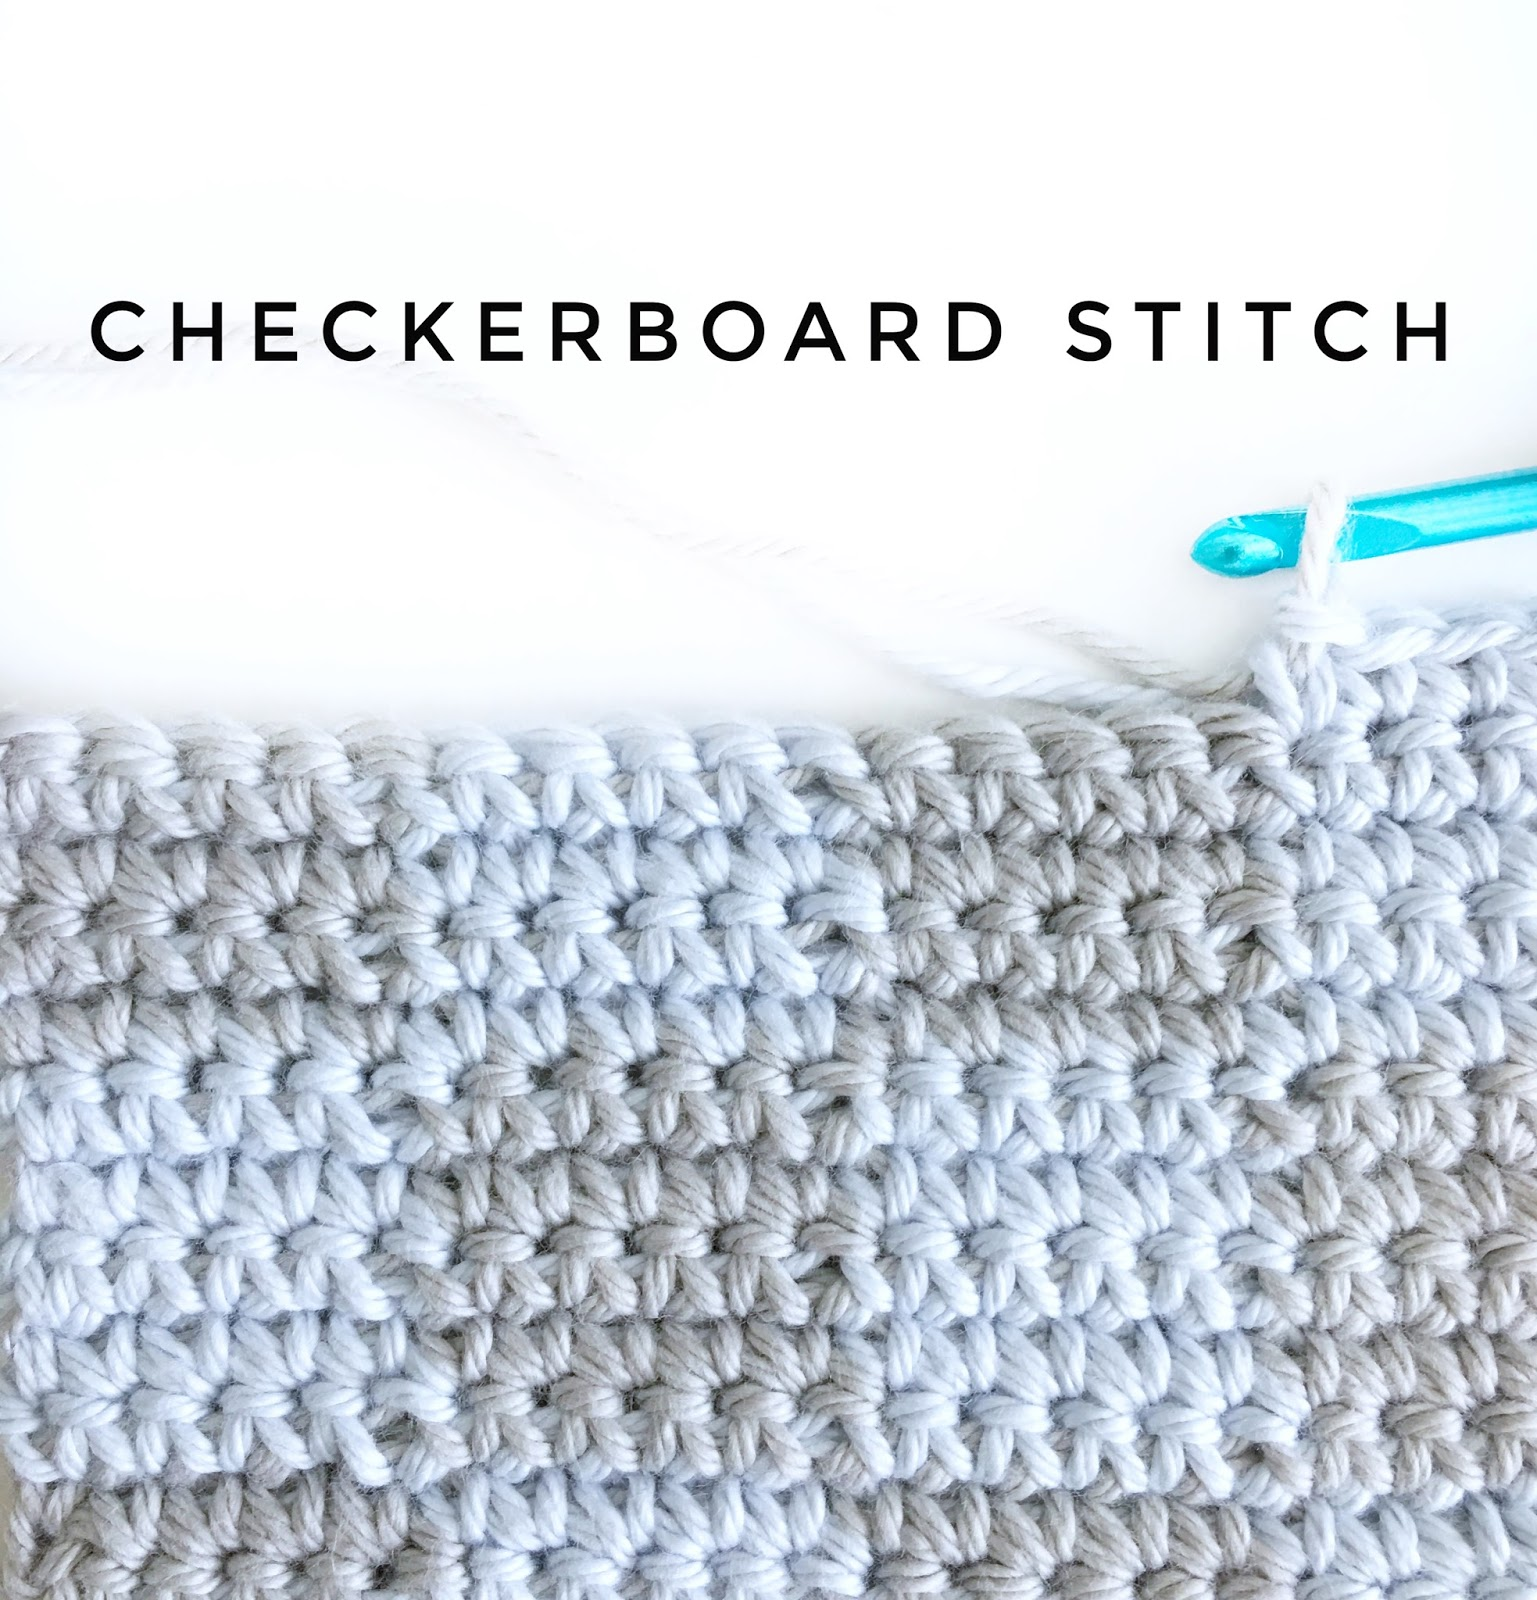 Crochet Checkerboard Stitch Daisy Farm Crafts Dinah Dish Cloth